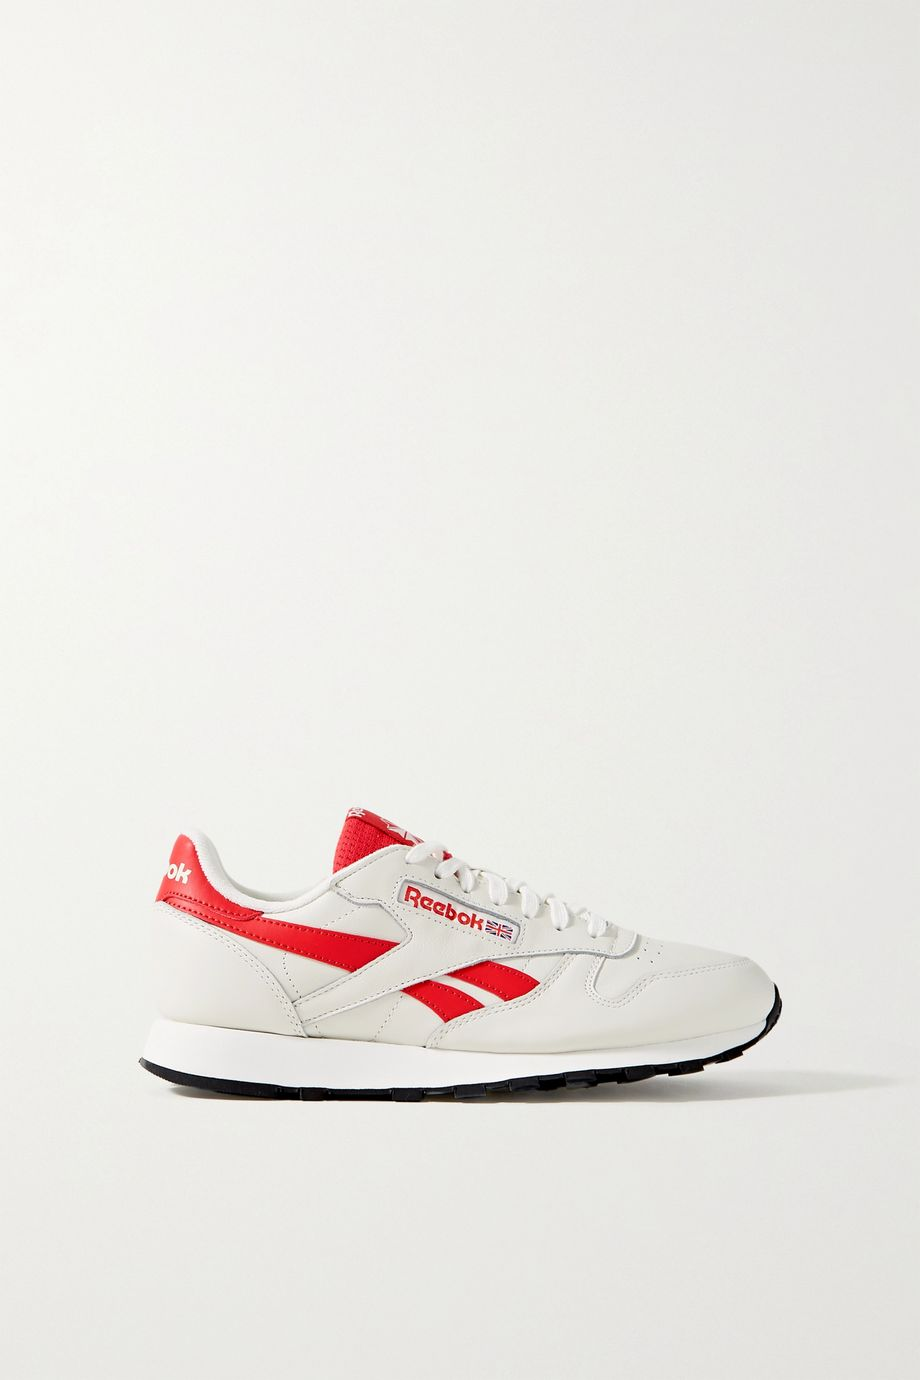 Reebok Classic leather and mesh sneakers